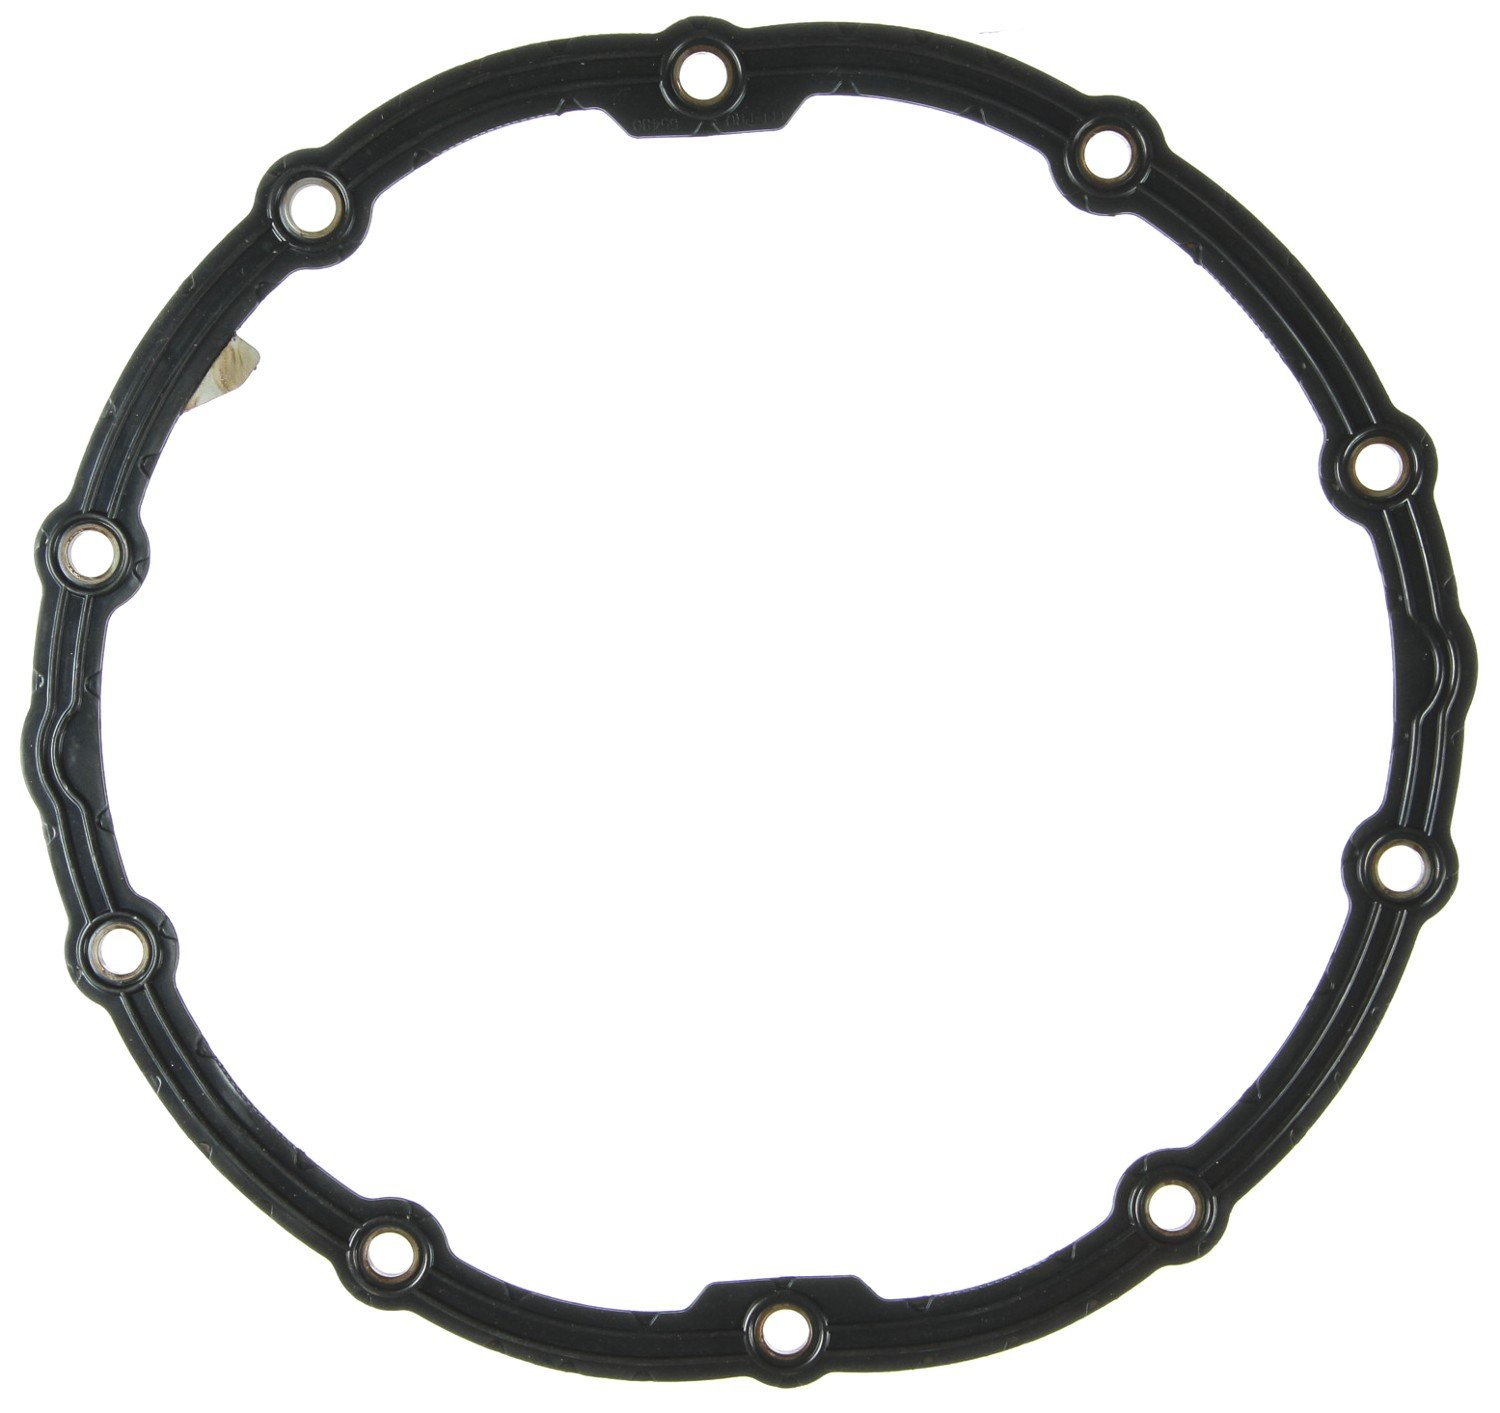 MAHLE Original P32873 Axle Housing Cover Gasket